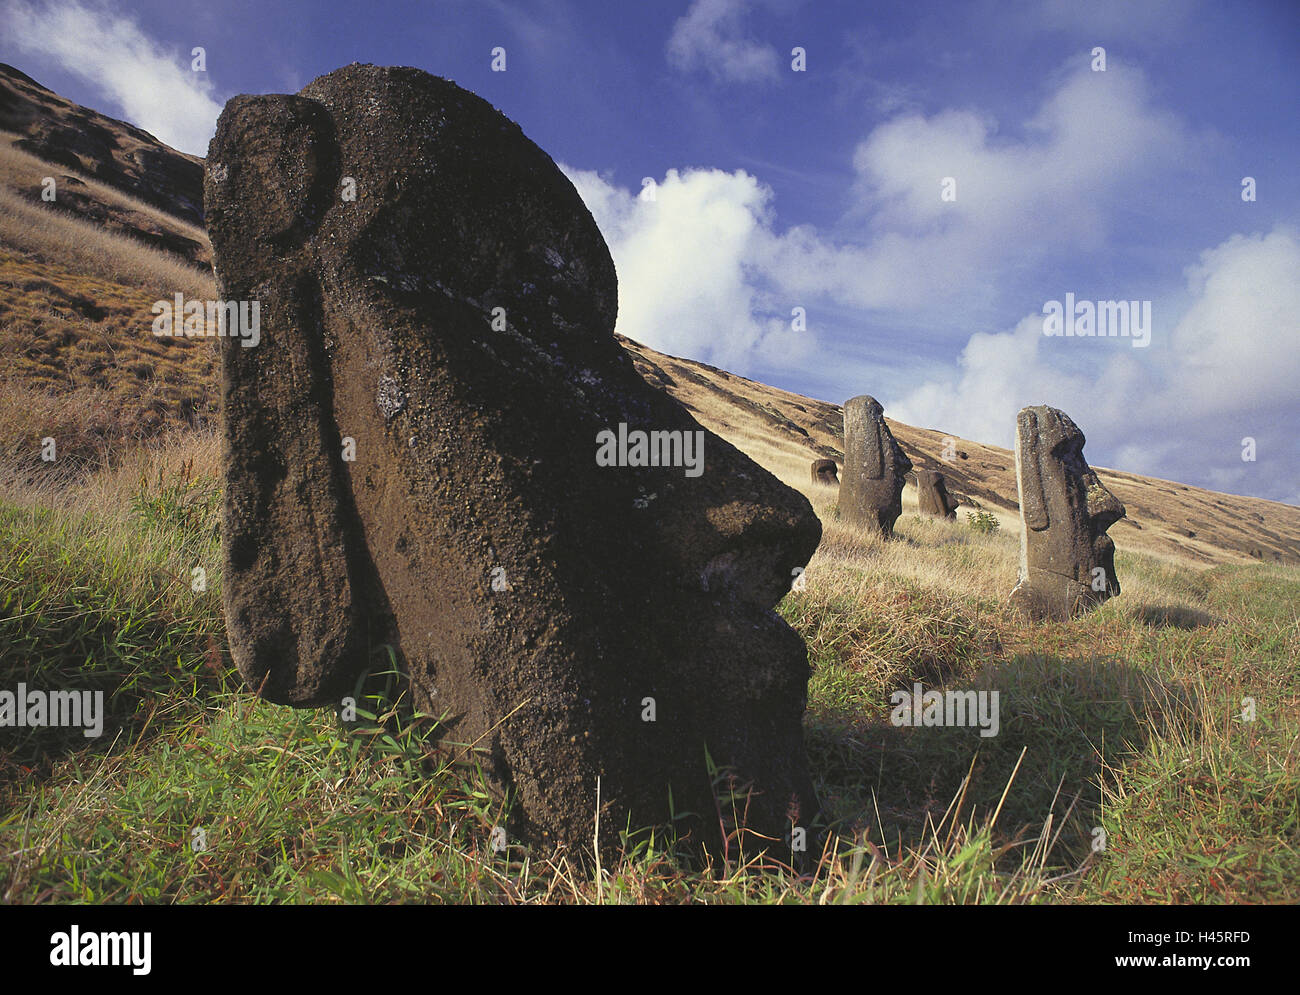 Chile, Easter island, Moais, sculpture, figure, heaven, clouds, scenery, deserted, outside, culture, place of interest, - Stock Image